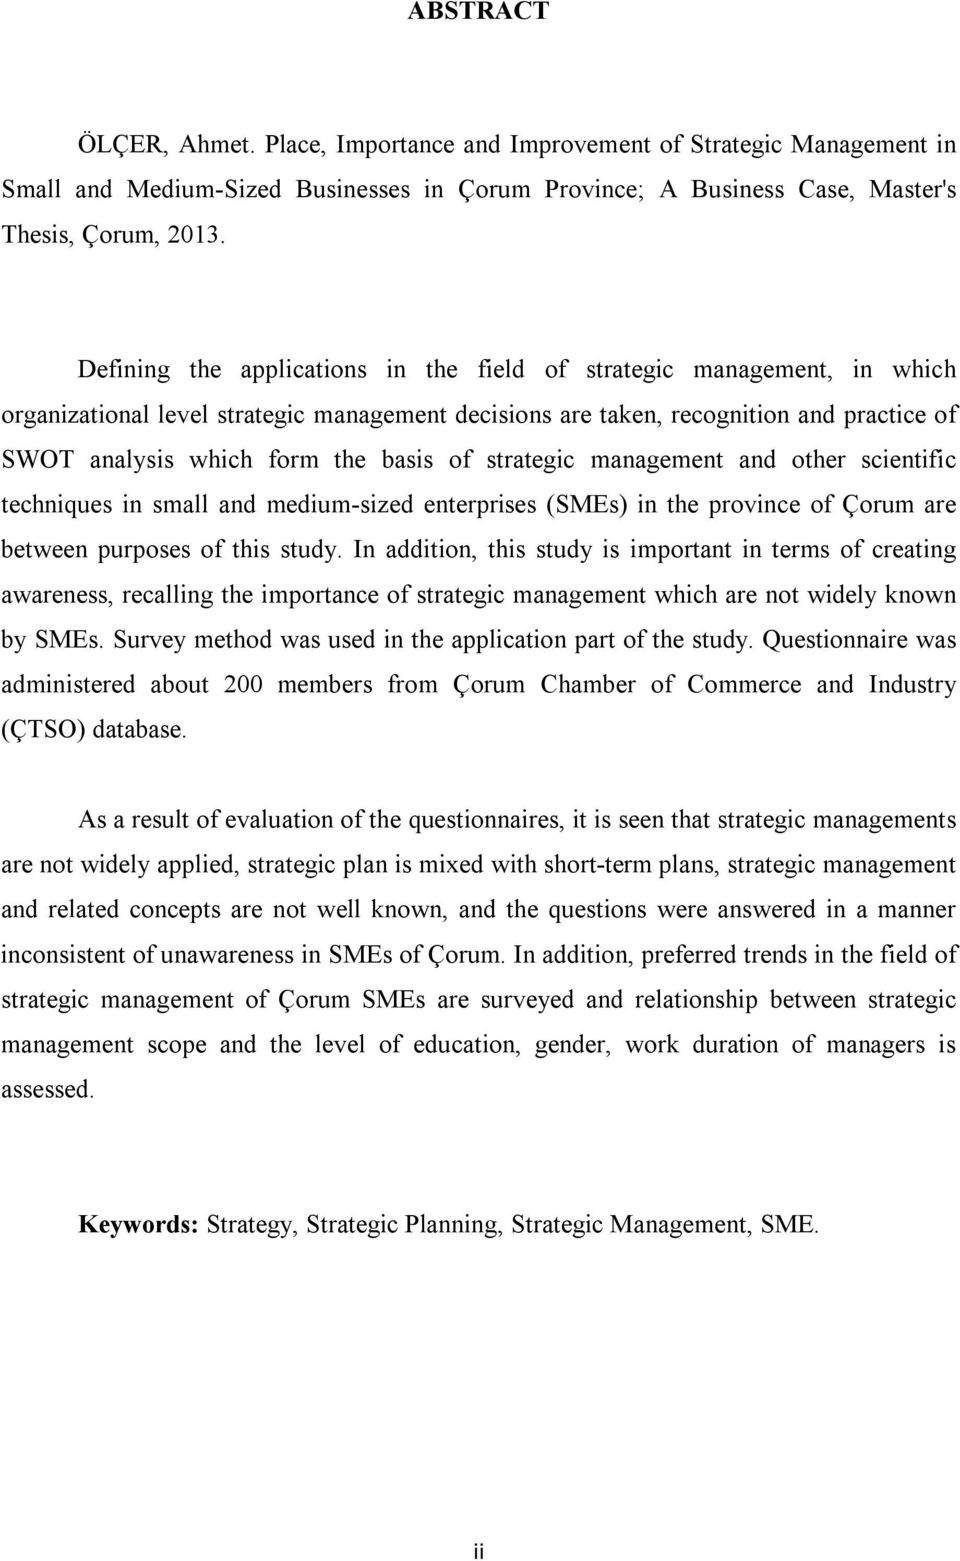 of strategic management and other scientific techniques in small and medium-sized enterprises (SMEs) in the province of Çorum are between purposes of this study.